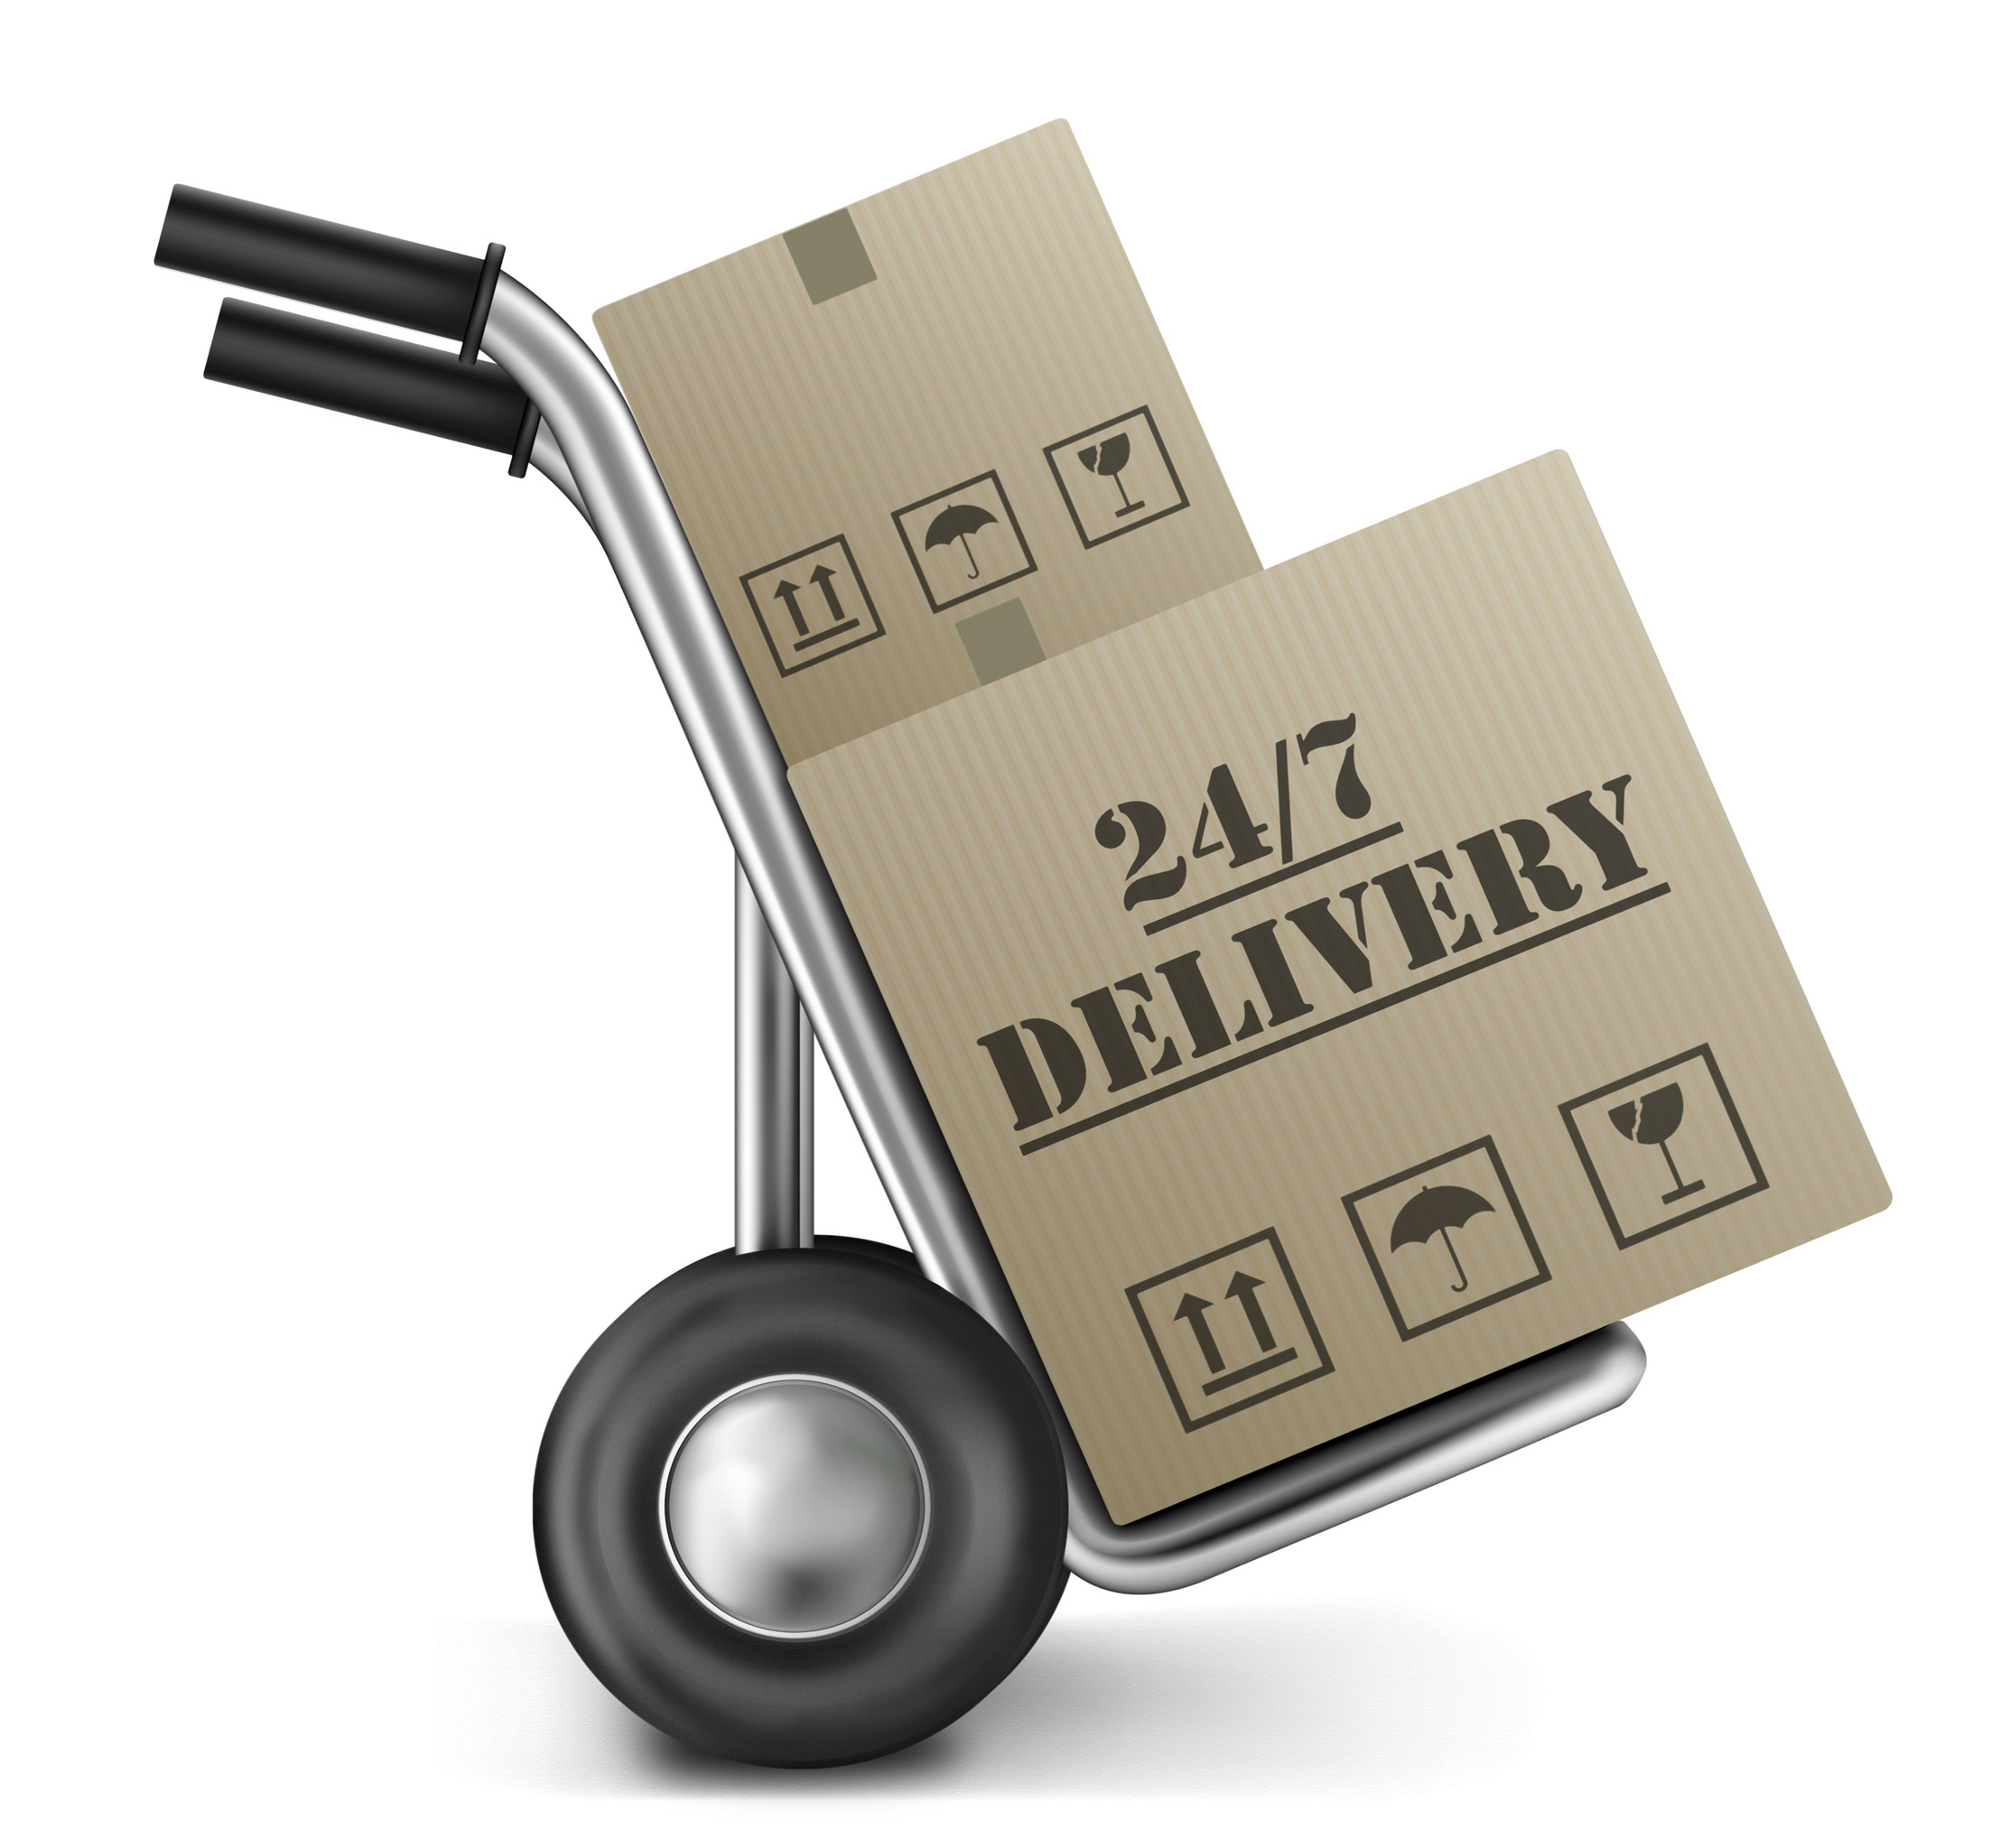 free delivery clipart - photo #9